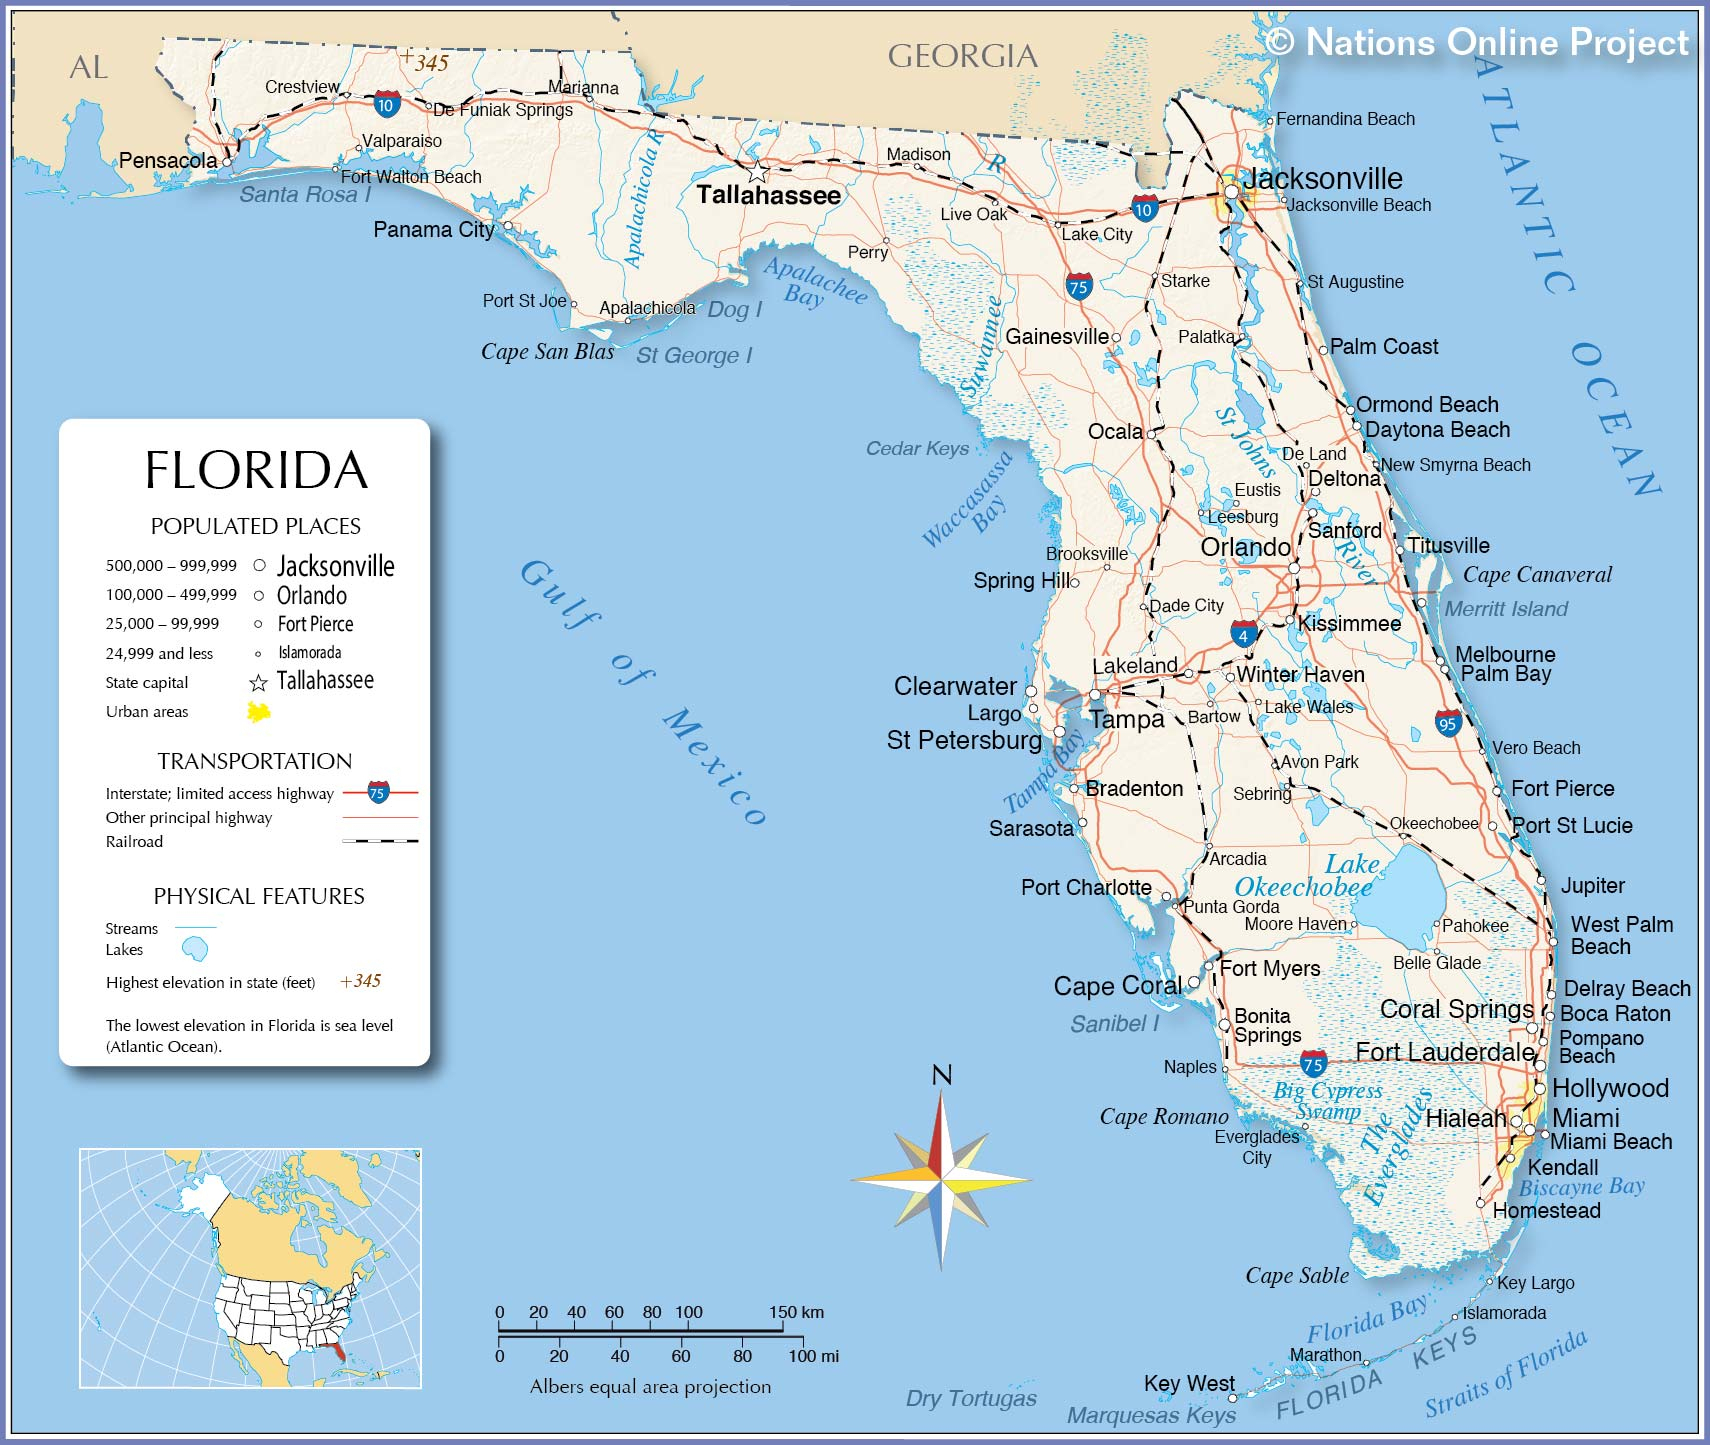 Reference Maps Of Florida, Usa - Nations Online Project - Jupiter Island Florida Map